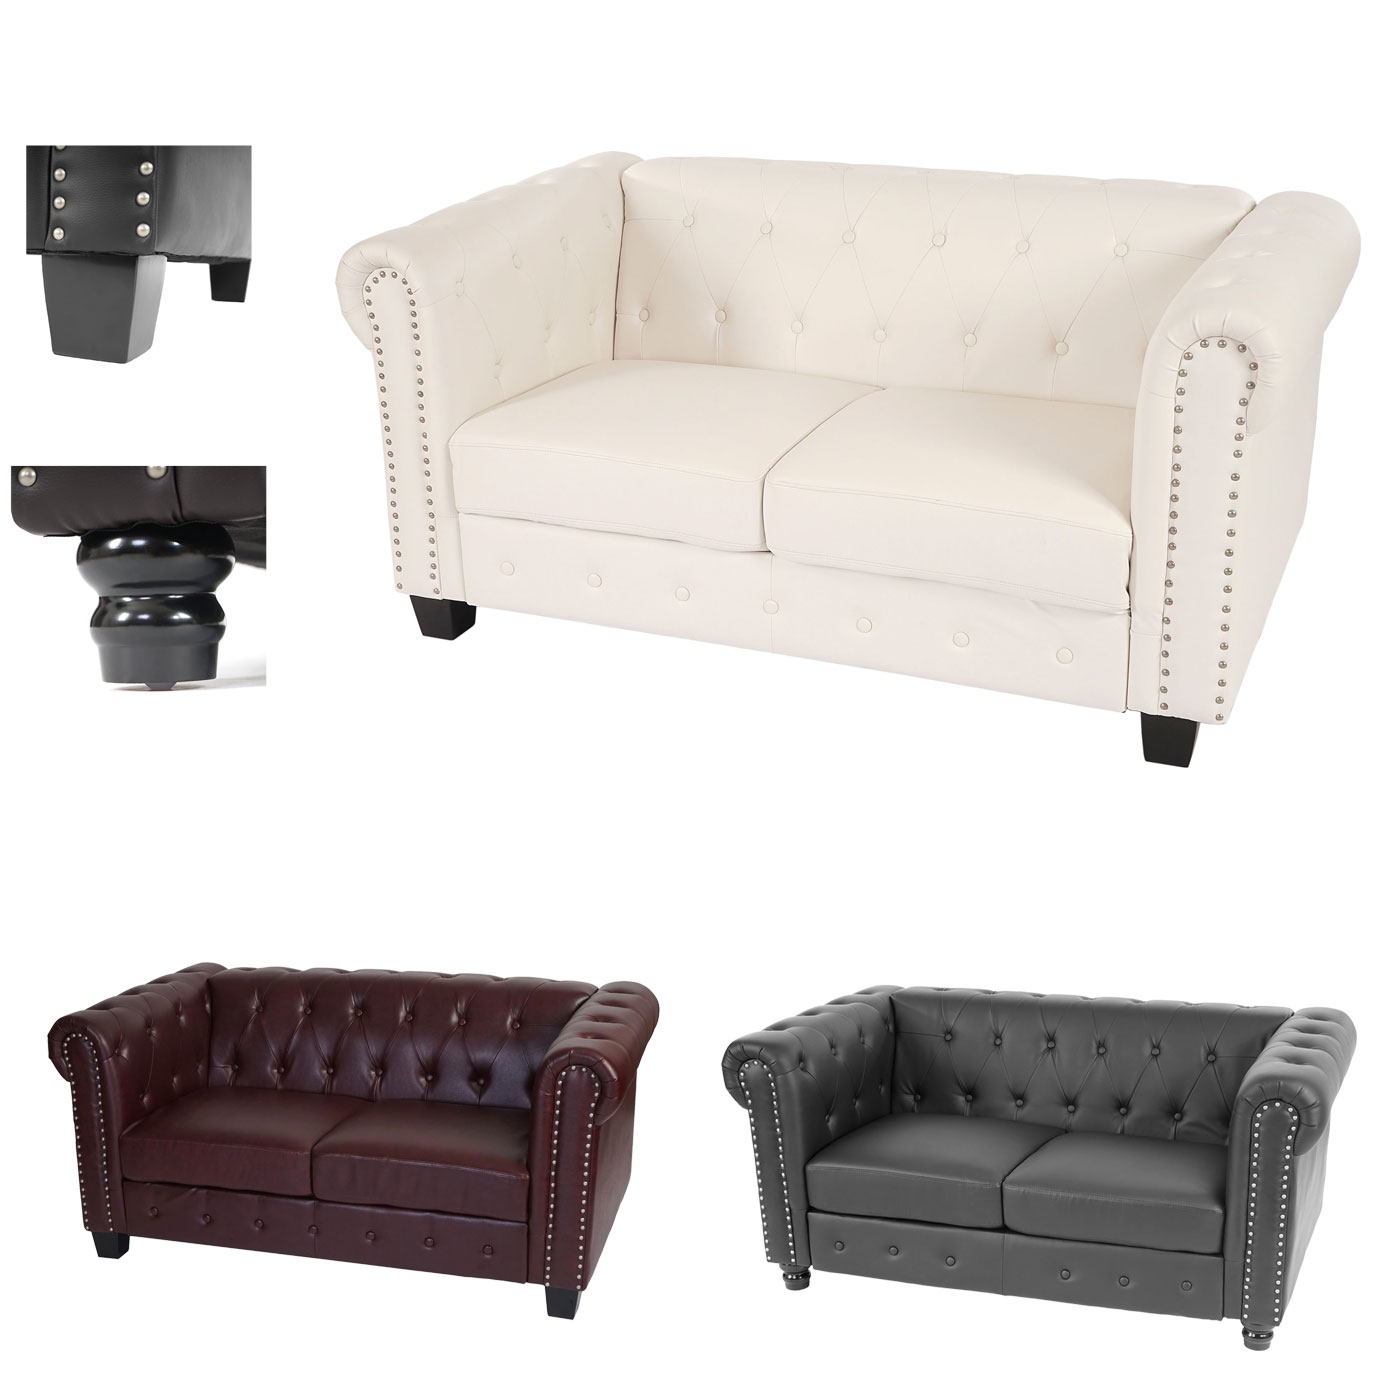 Chesterfield Lounge 2er Sofa Couch Runde Füsse Jambch